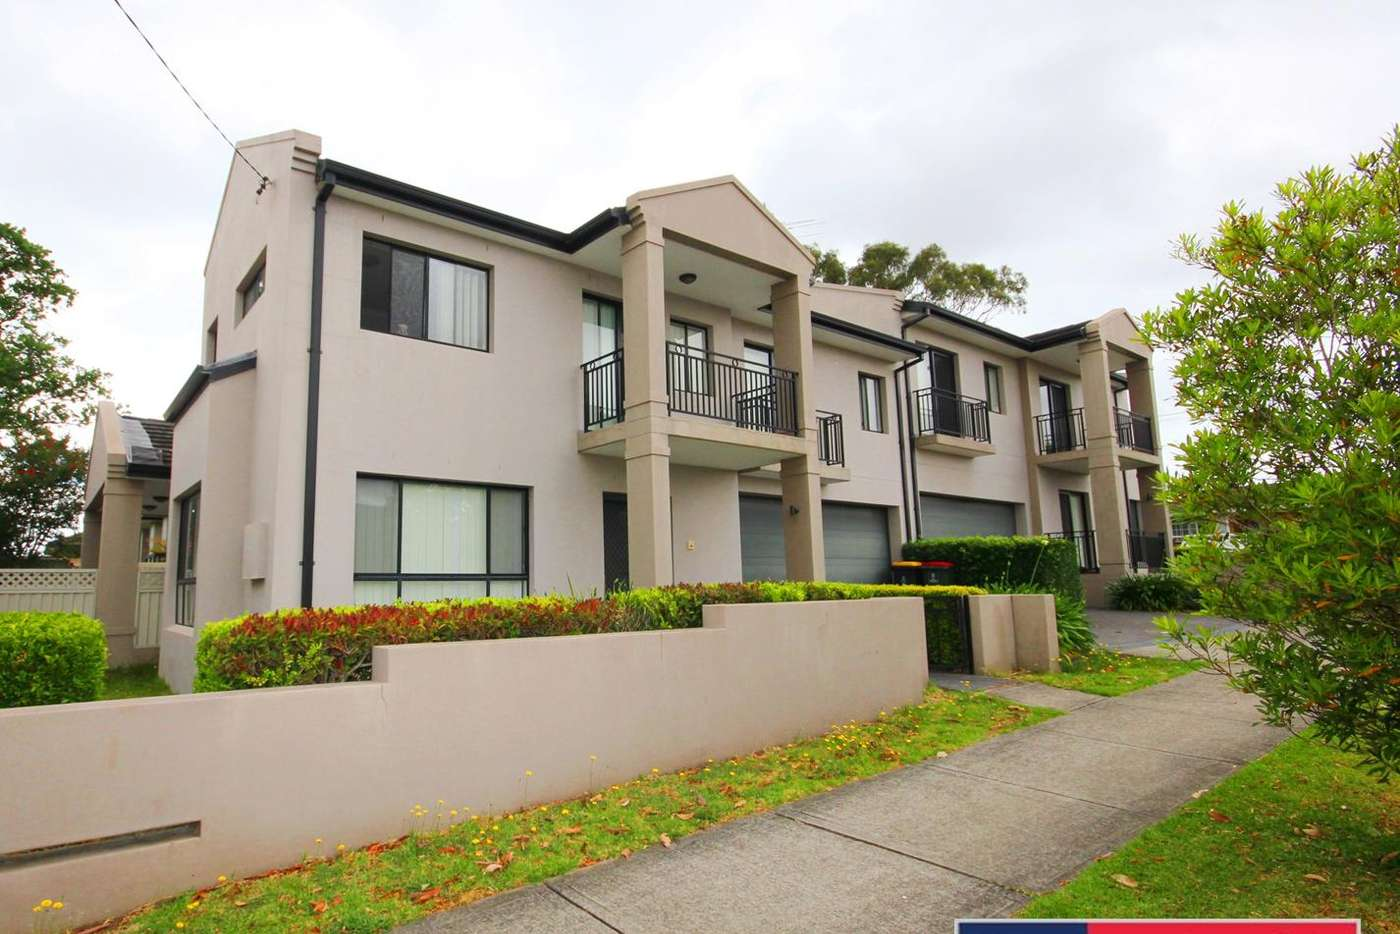 Main view of Homely house listing, 7 Leicester Street, Bexley NSW 2207